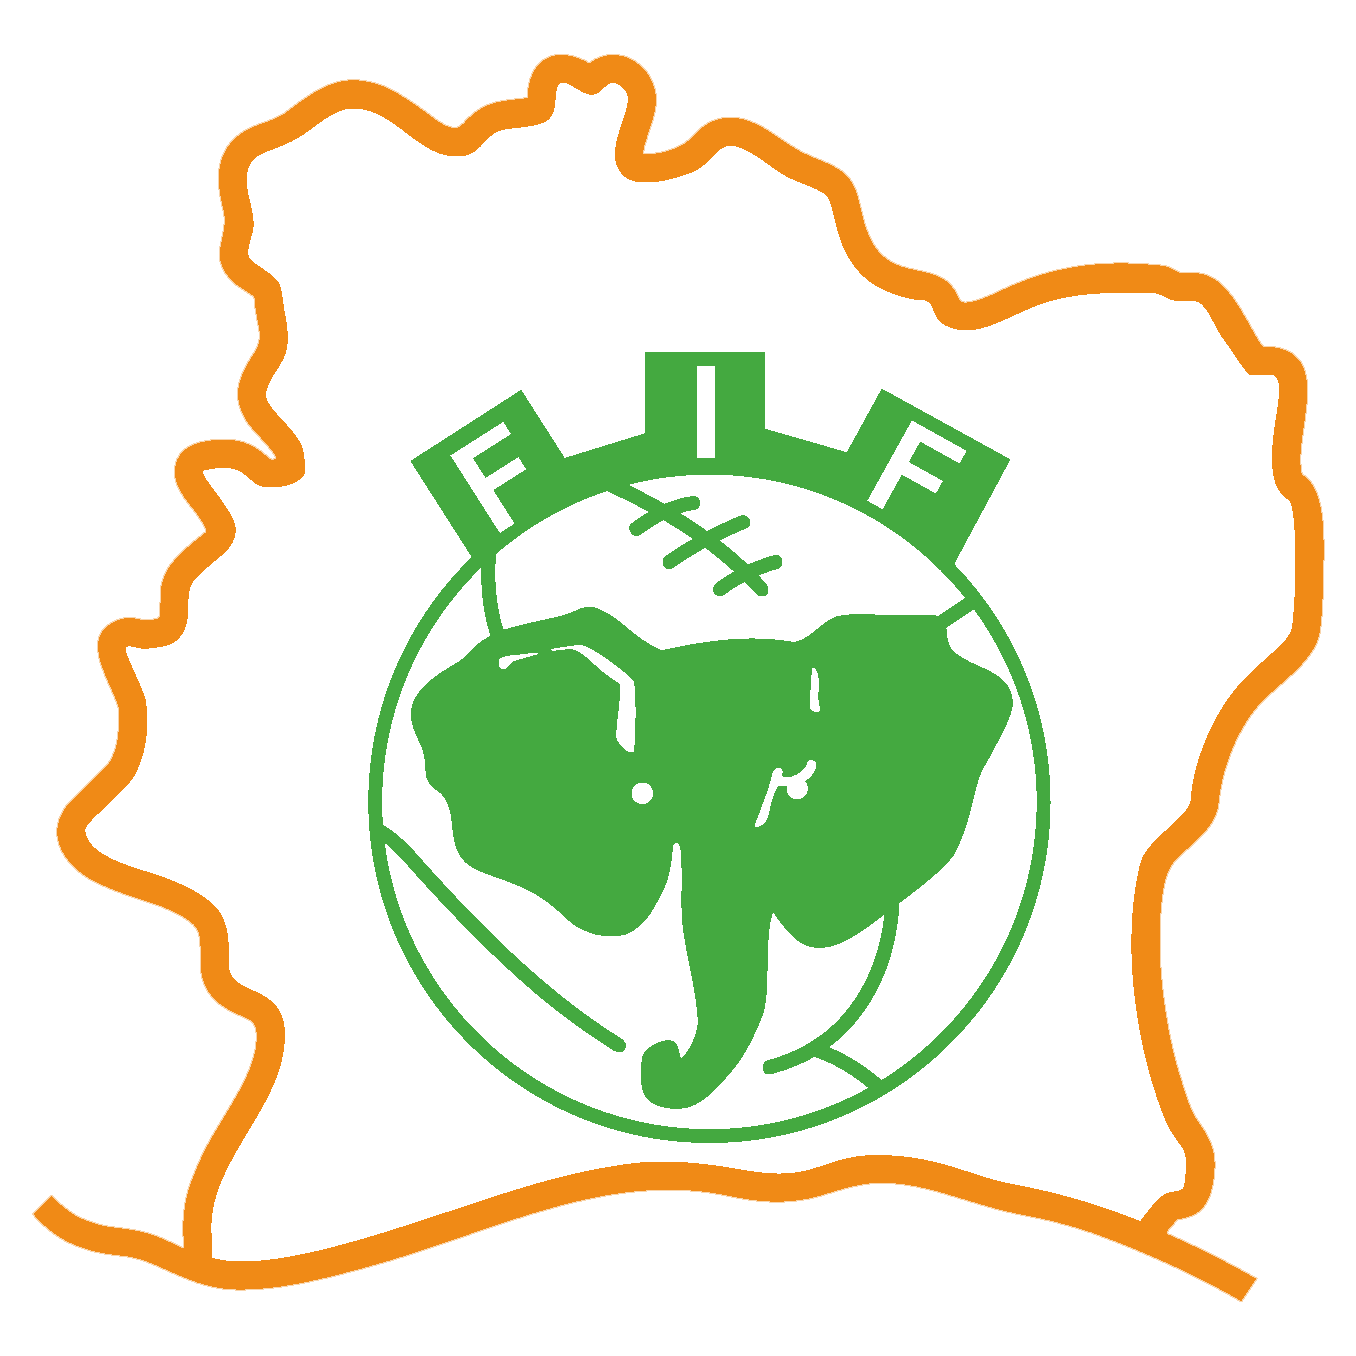 Federation Ivoirienne de Football & Cute dIvoire National Team Logo [EPS File] png